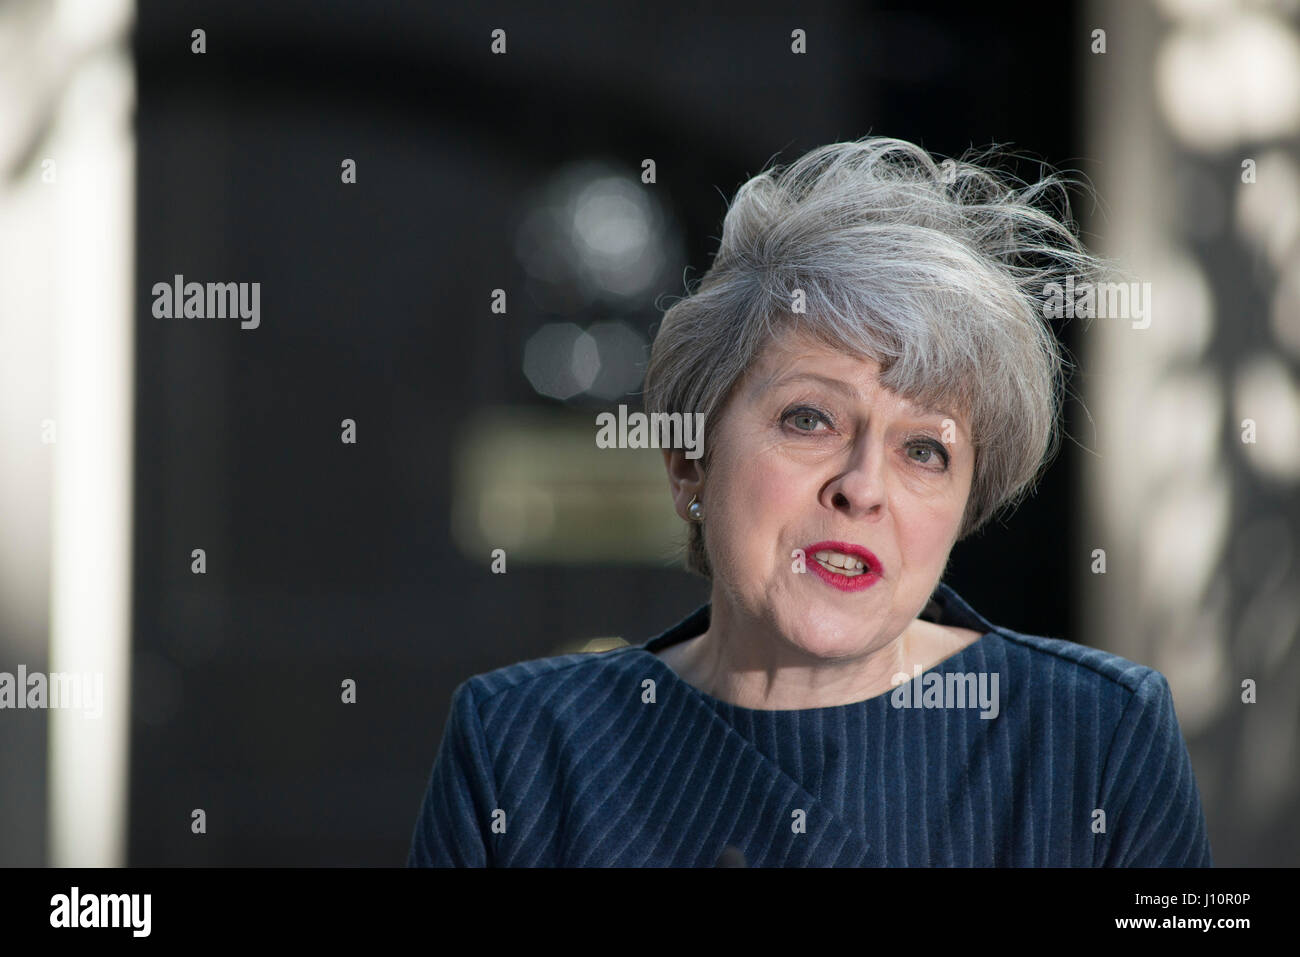 Downing Street, London UK. 18th April, 2017. PM Theresa May announces a snap election for 8th June 2017 in order - Stock Image